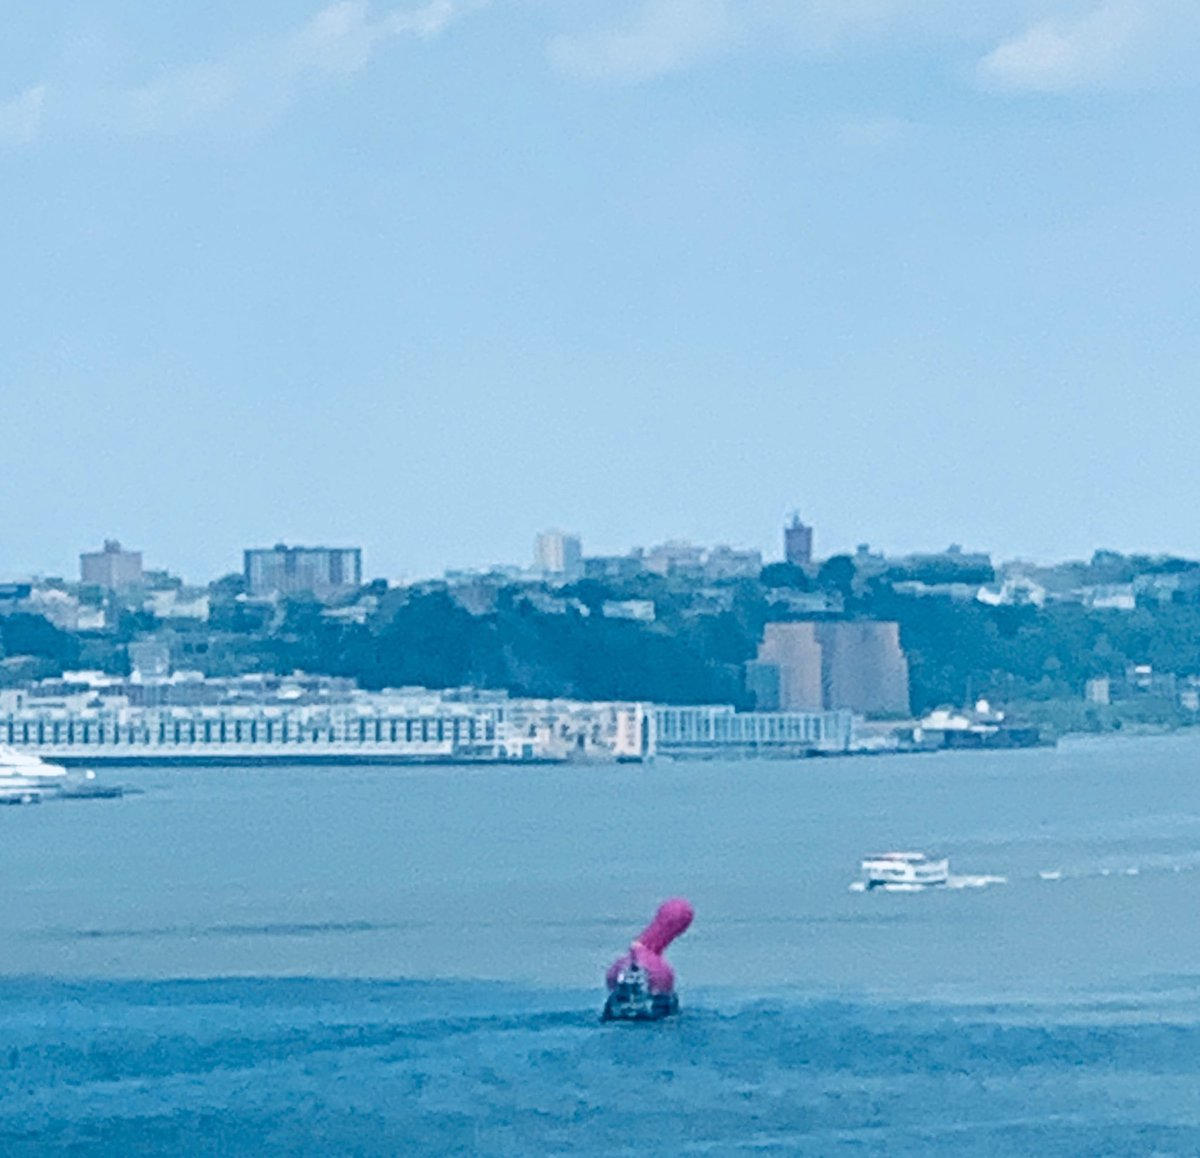 It would appear there's a large pink penis floating along the Hudson River. #NYC <br>http://pic.twitter.com/iyfyWgLm01